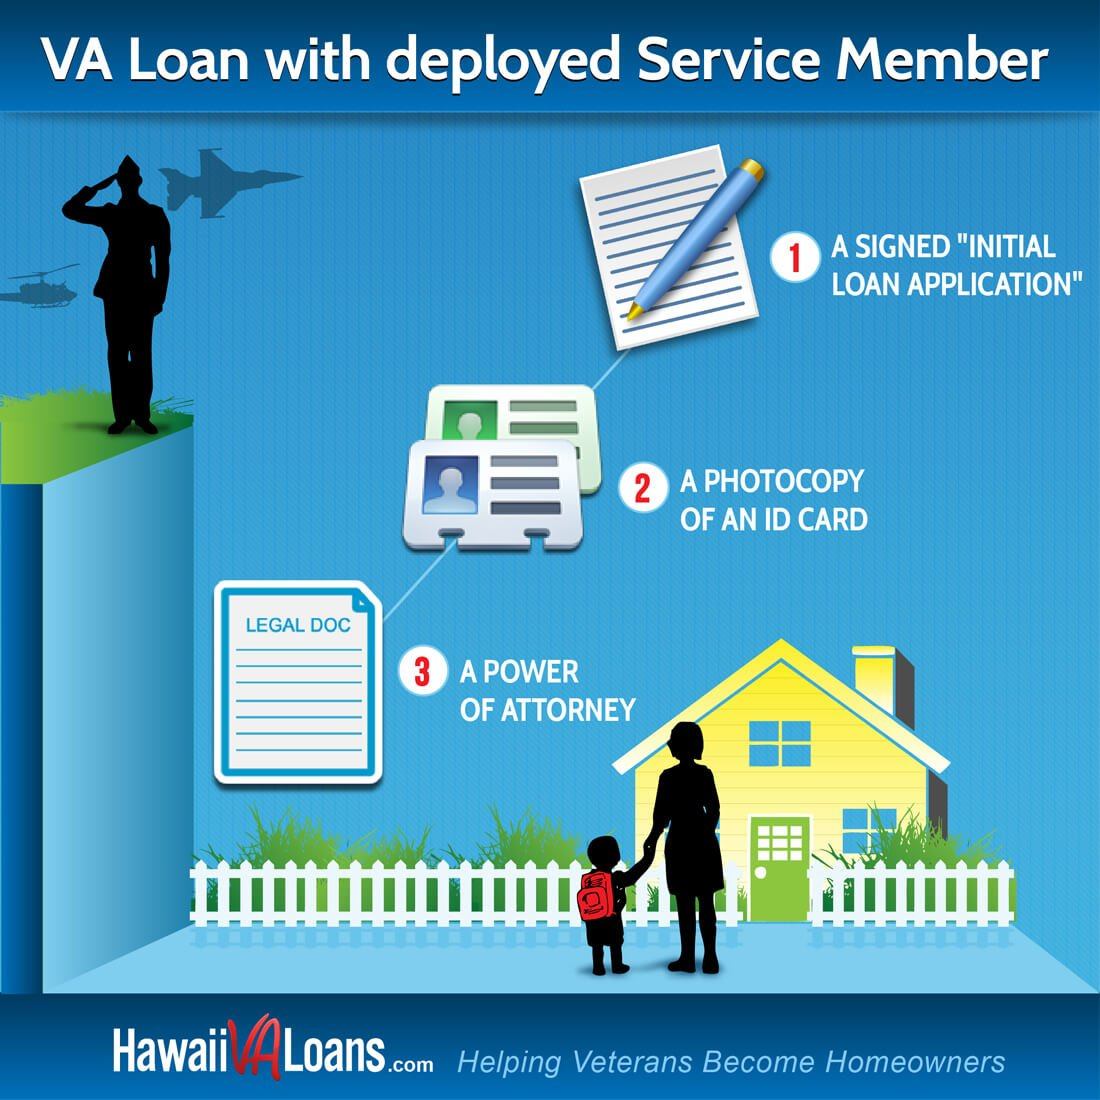 Va loan specialist hawaii | COOKING WITH THE PROS